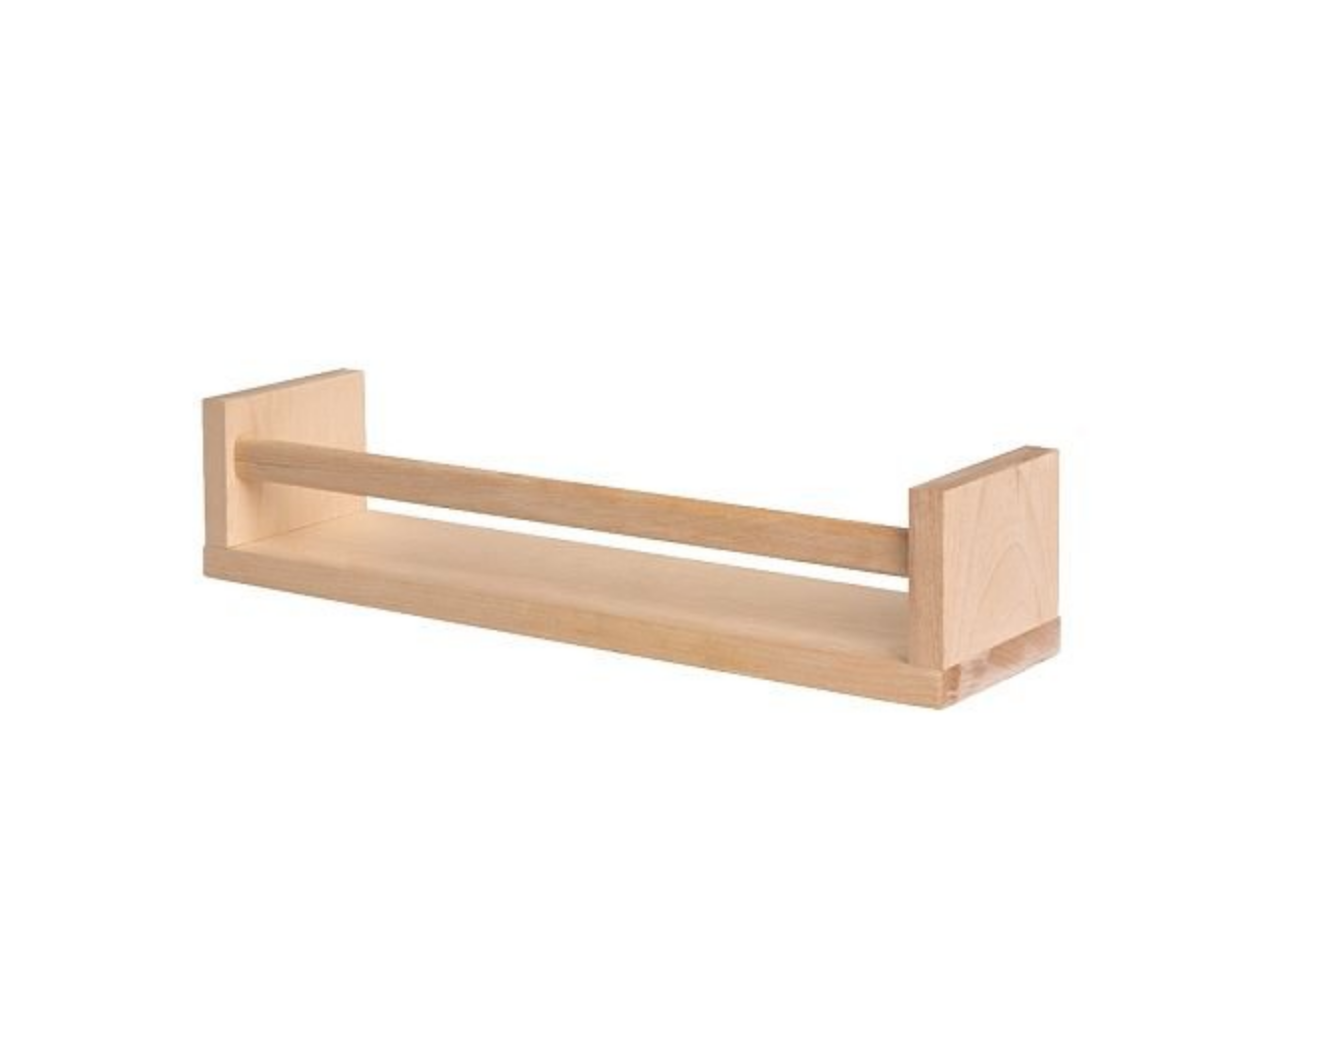 estante cuentos madera Amazon. Estante para cuentos